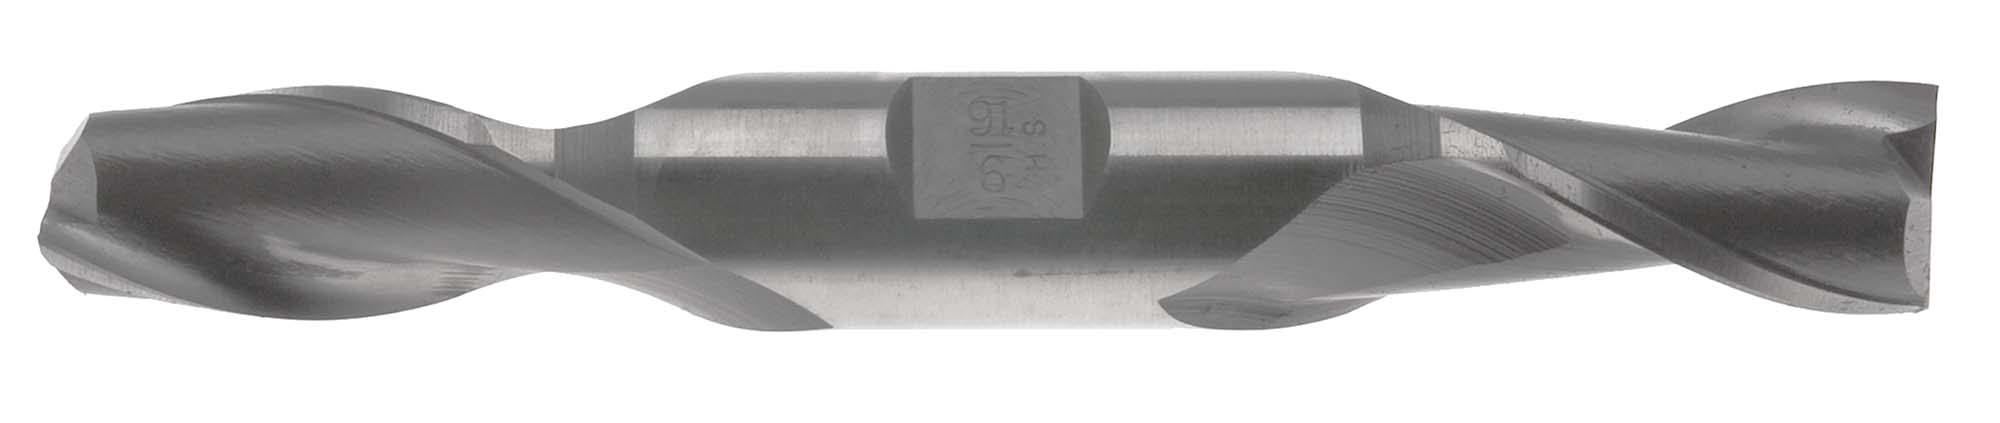 "EM-C16  1/2"" Double End 2 Flute End Mill, High Speed Steel,  1/2"" Shank"